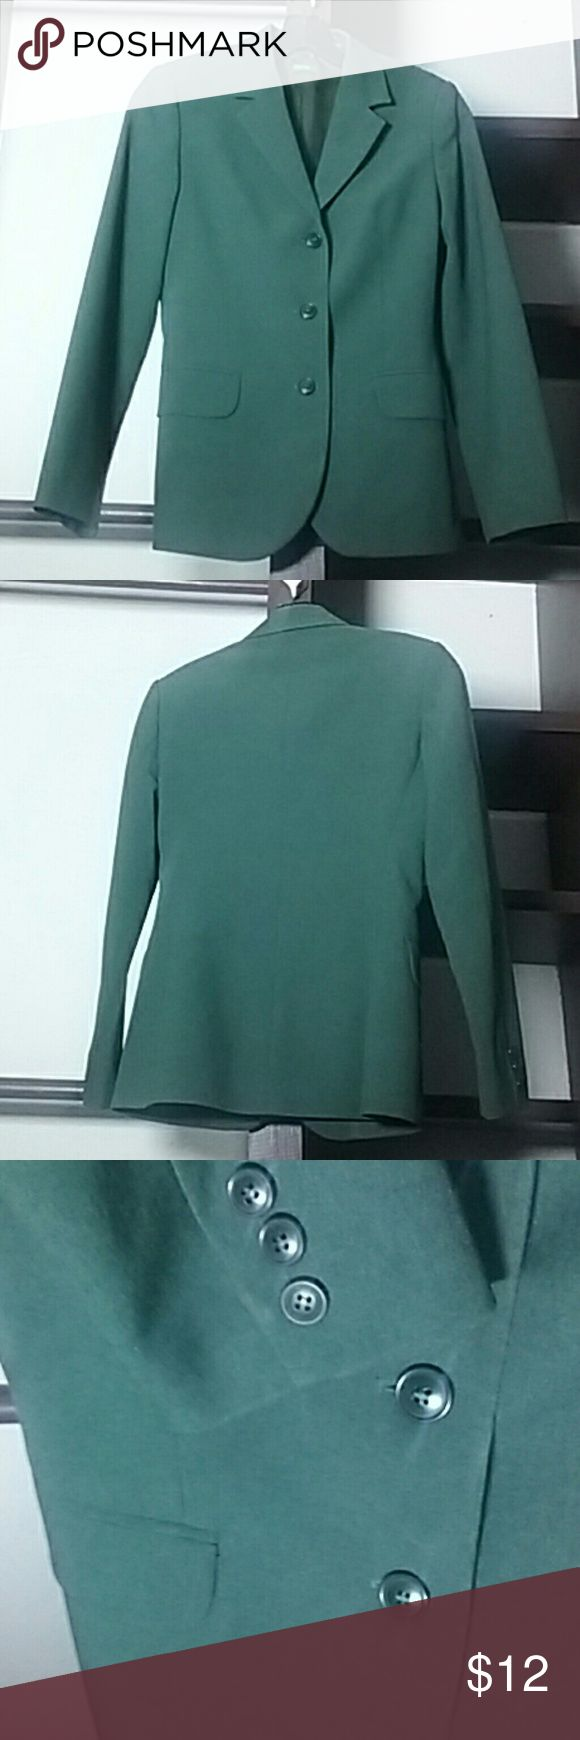 Forest Green Jacket Well-kept, barely worn professional blazer, perfect for the office. The fabric resists wrinkles, keeping you looking put-together all day long! Such a pretty color: slightly bluish medium-dark green (forest). Two faux pockets. 3 button closure. Lapel. Chic straight fit that caresses your curves but doesn't hug them. The size is Italian size 38, which equates to a US 4 or Small. United Colors Of Benetton Jackets & Coats Blazers